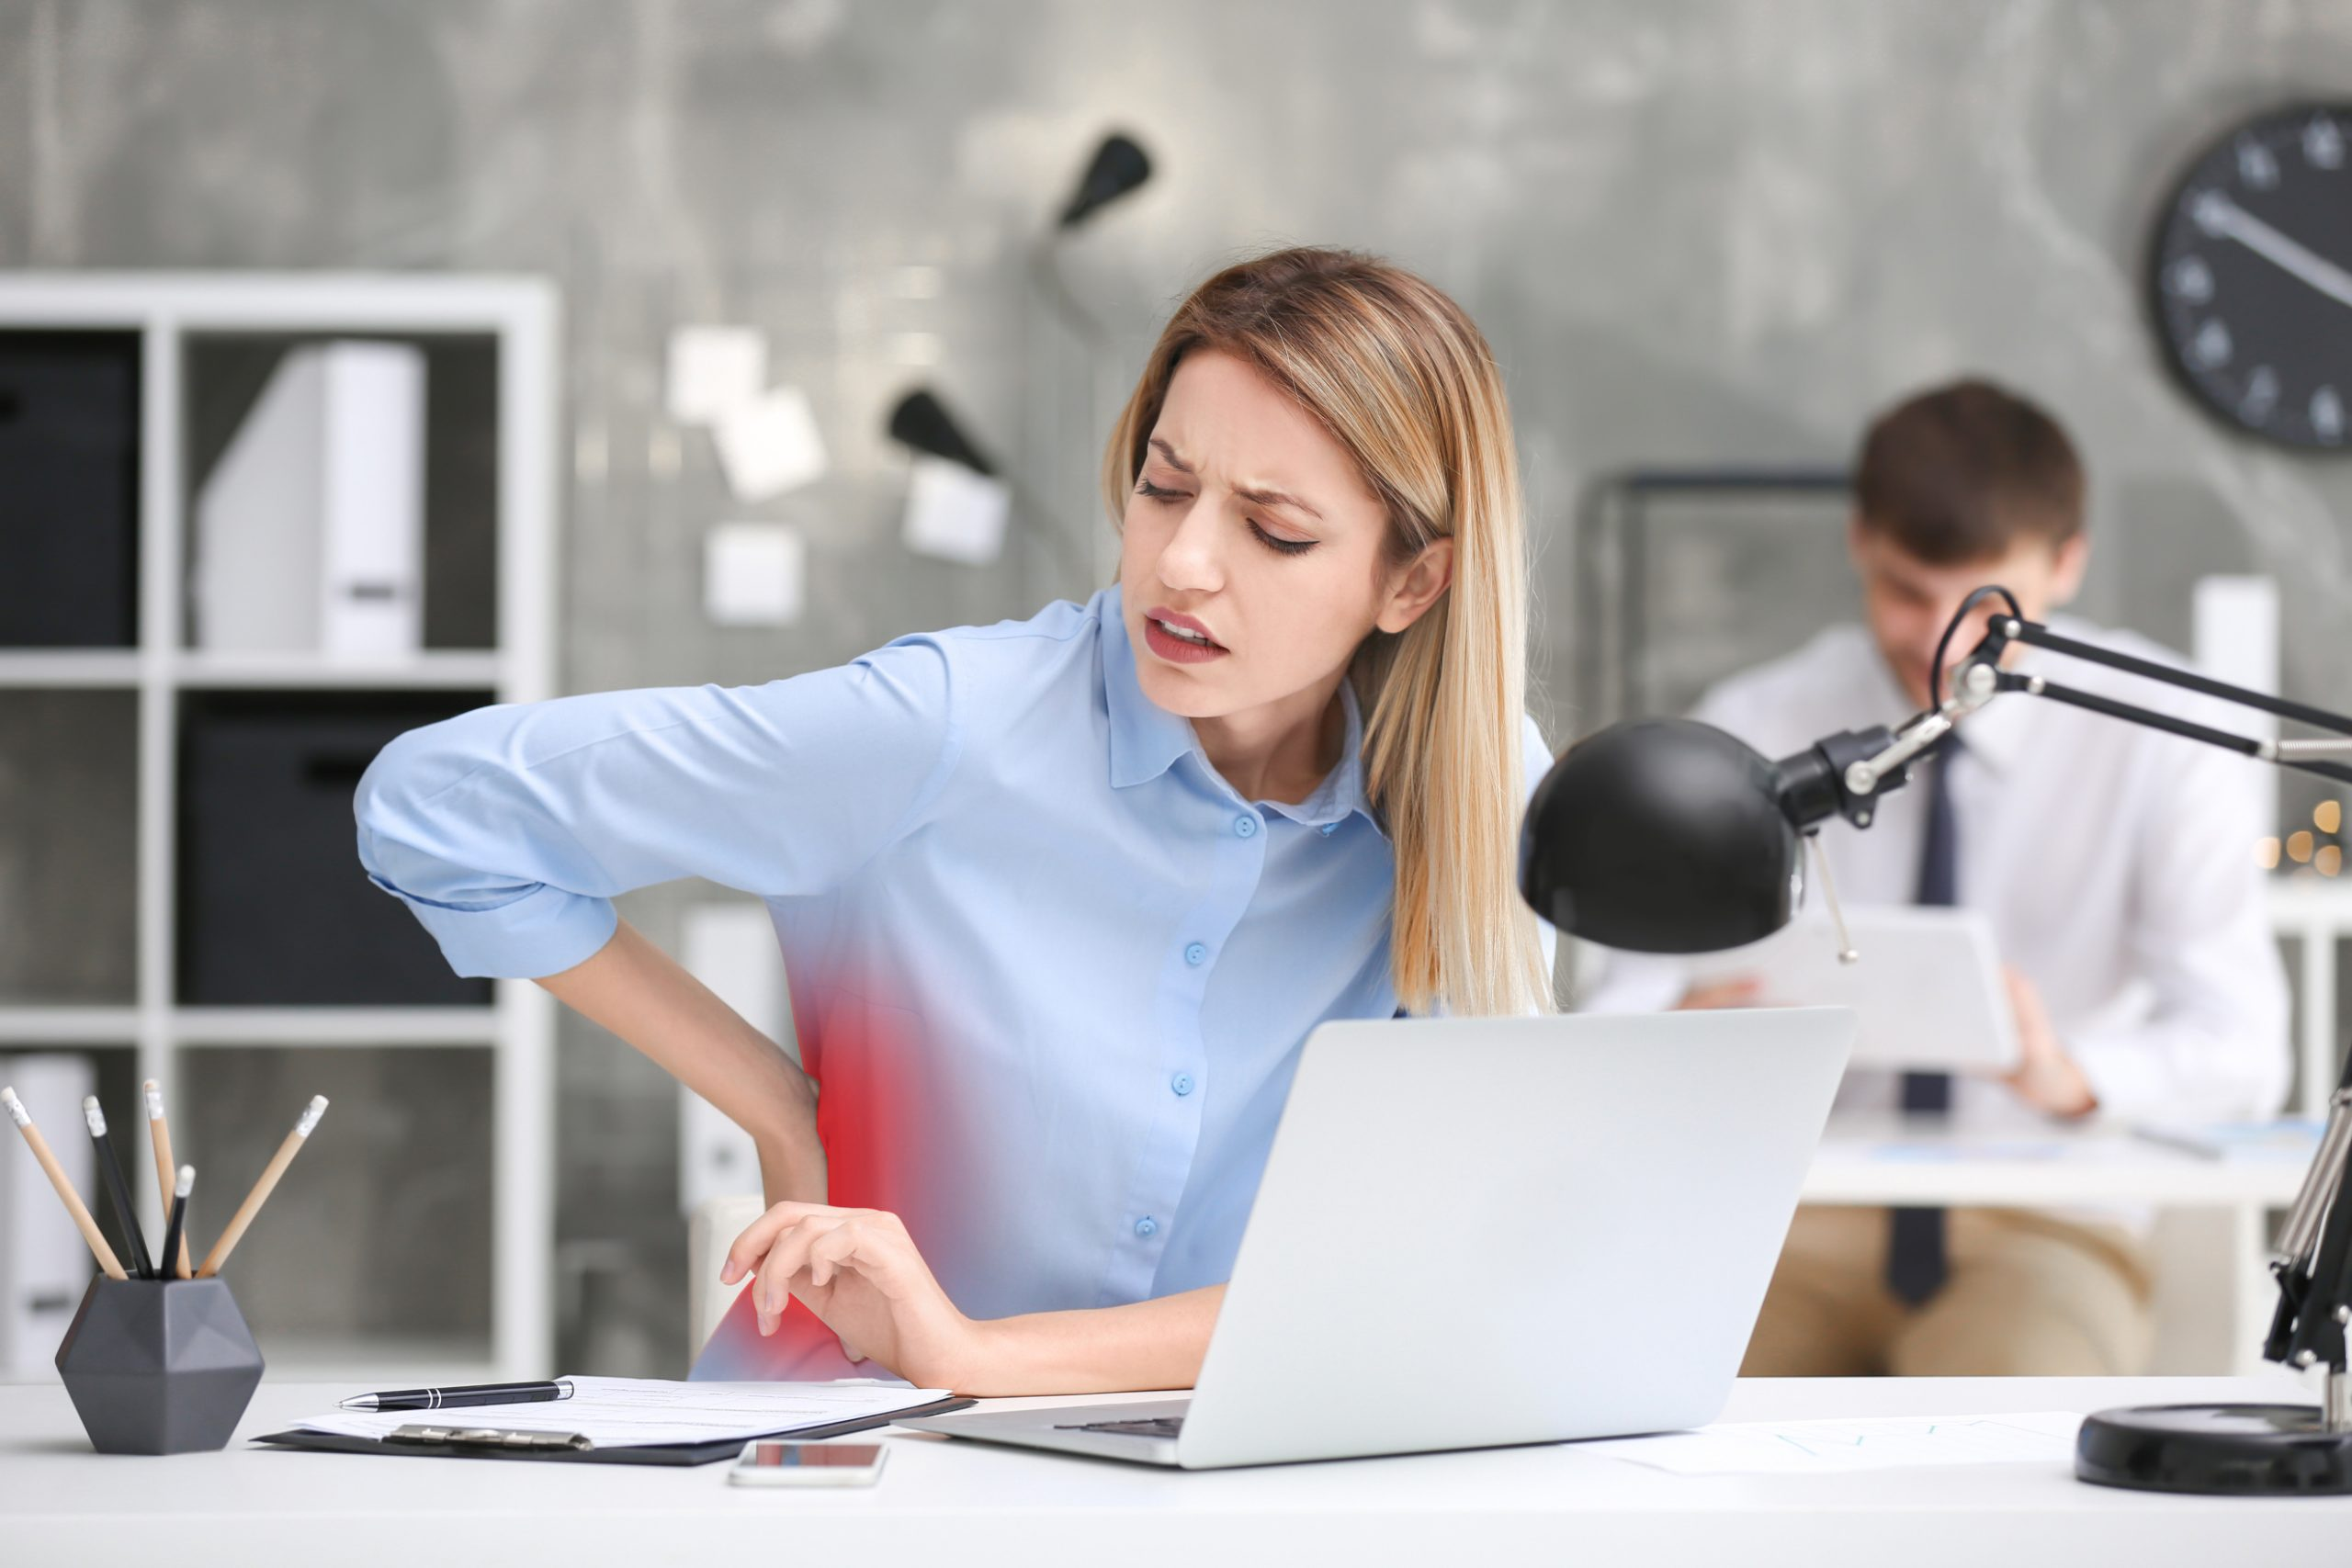 Young woman suffering from back pain at table in office